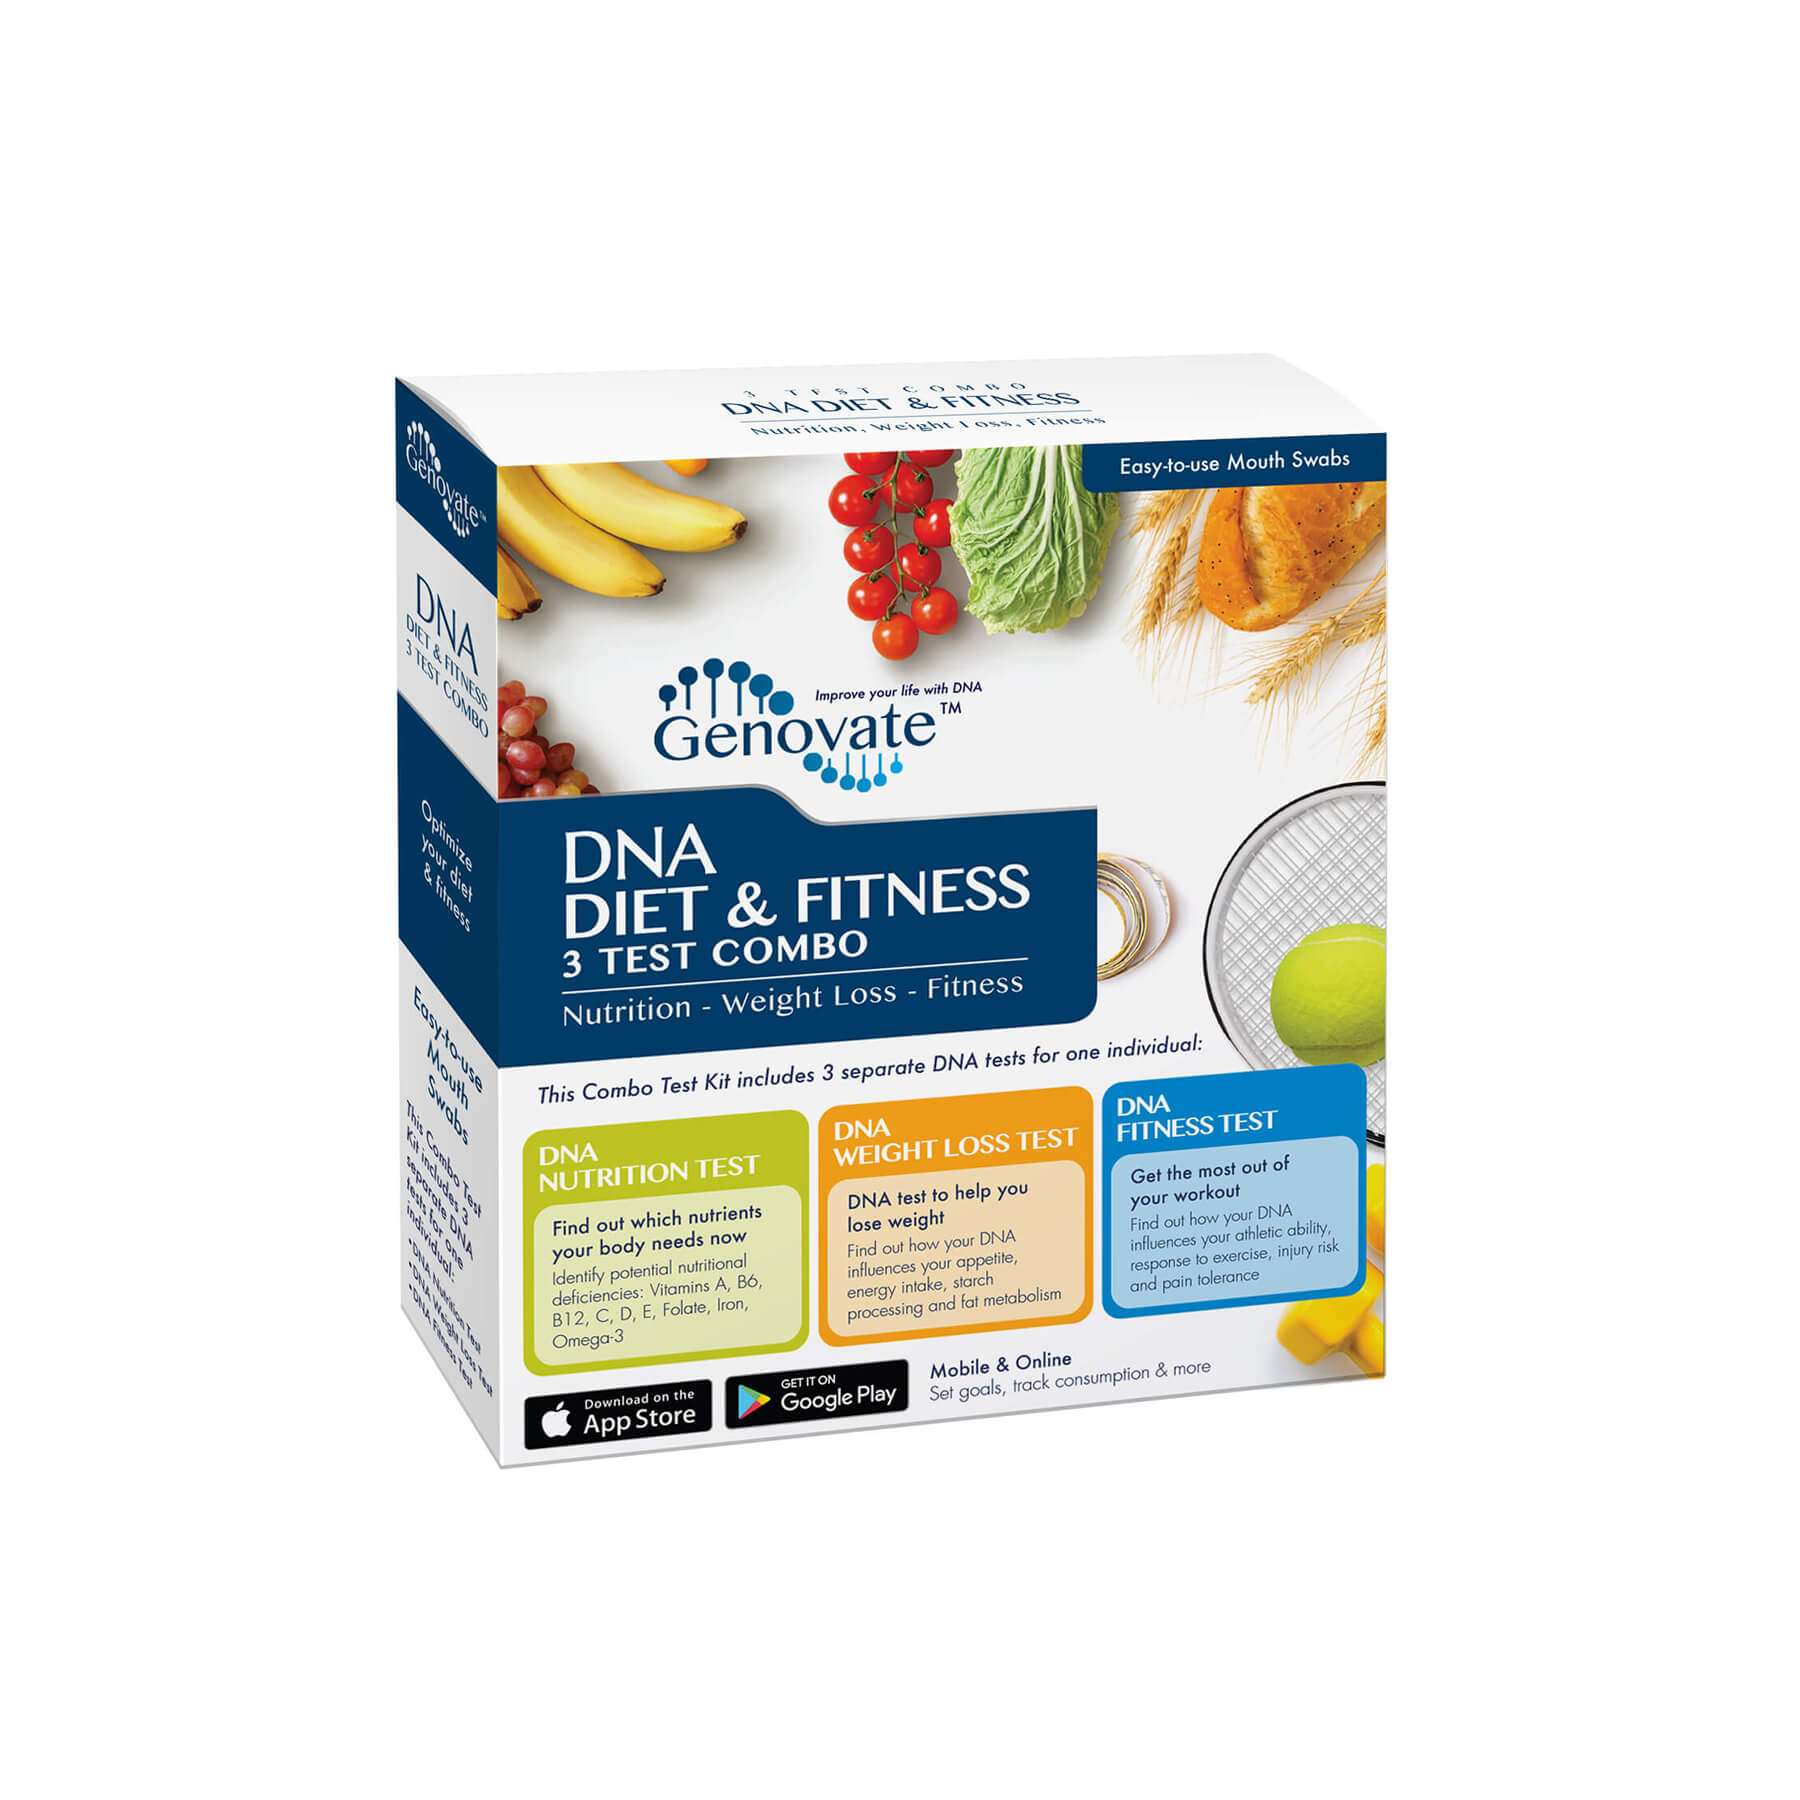 dna diet and fitness combo - nutrition, weight loss, fitness | genovate